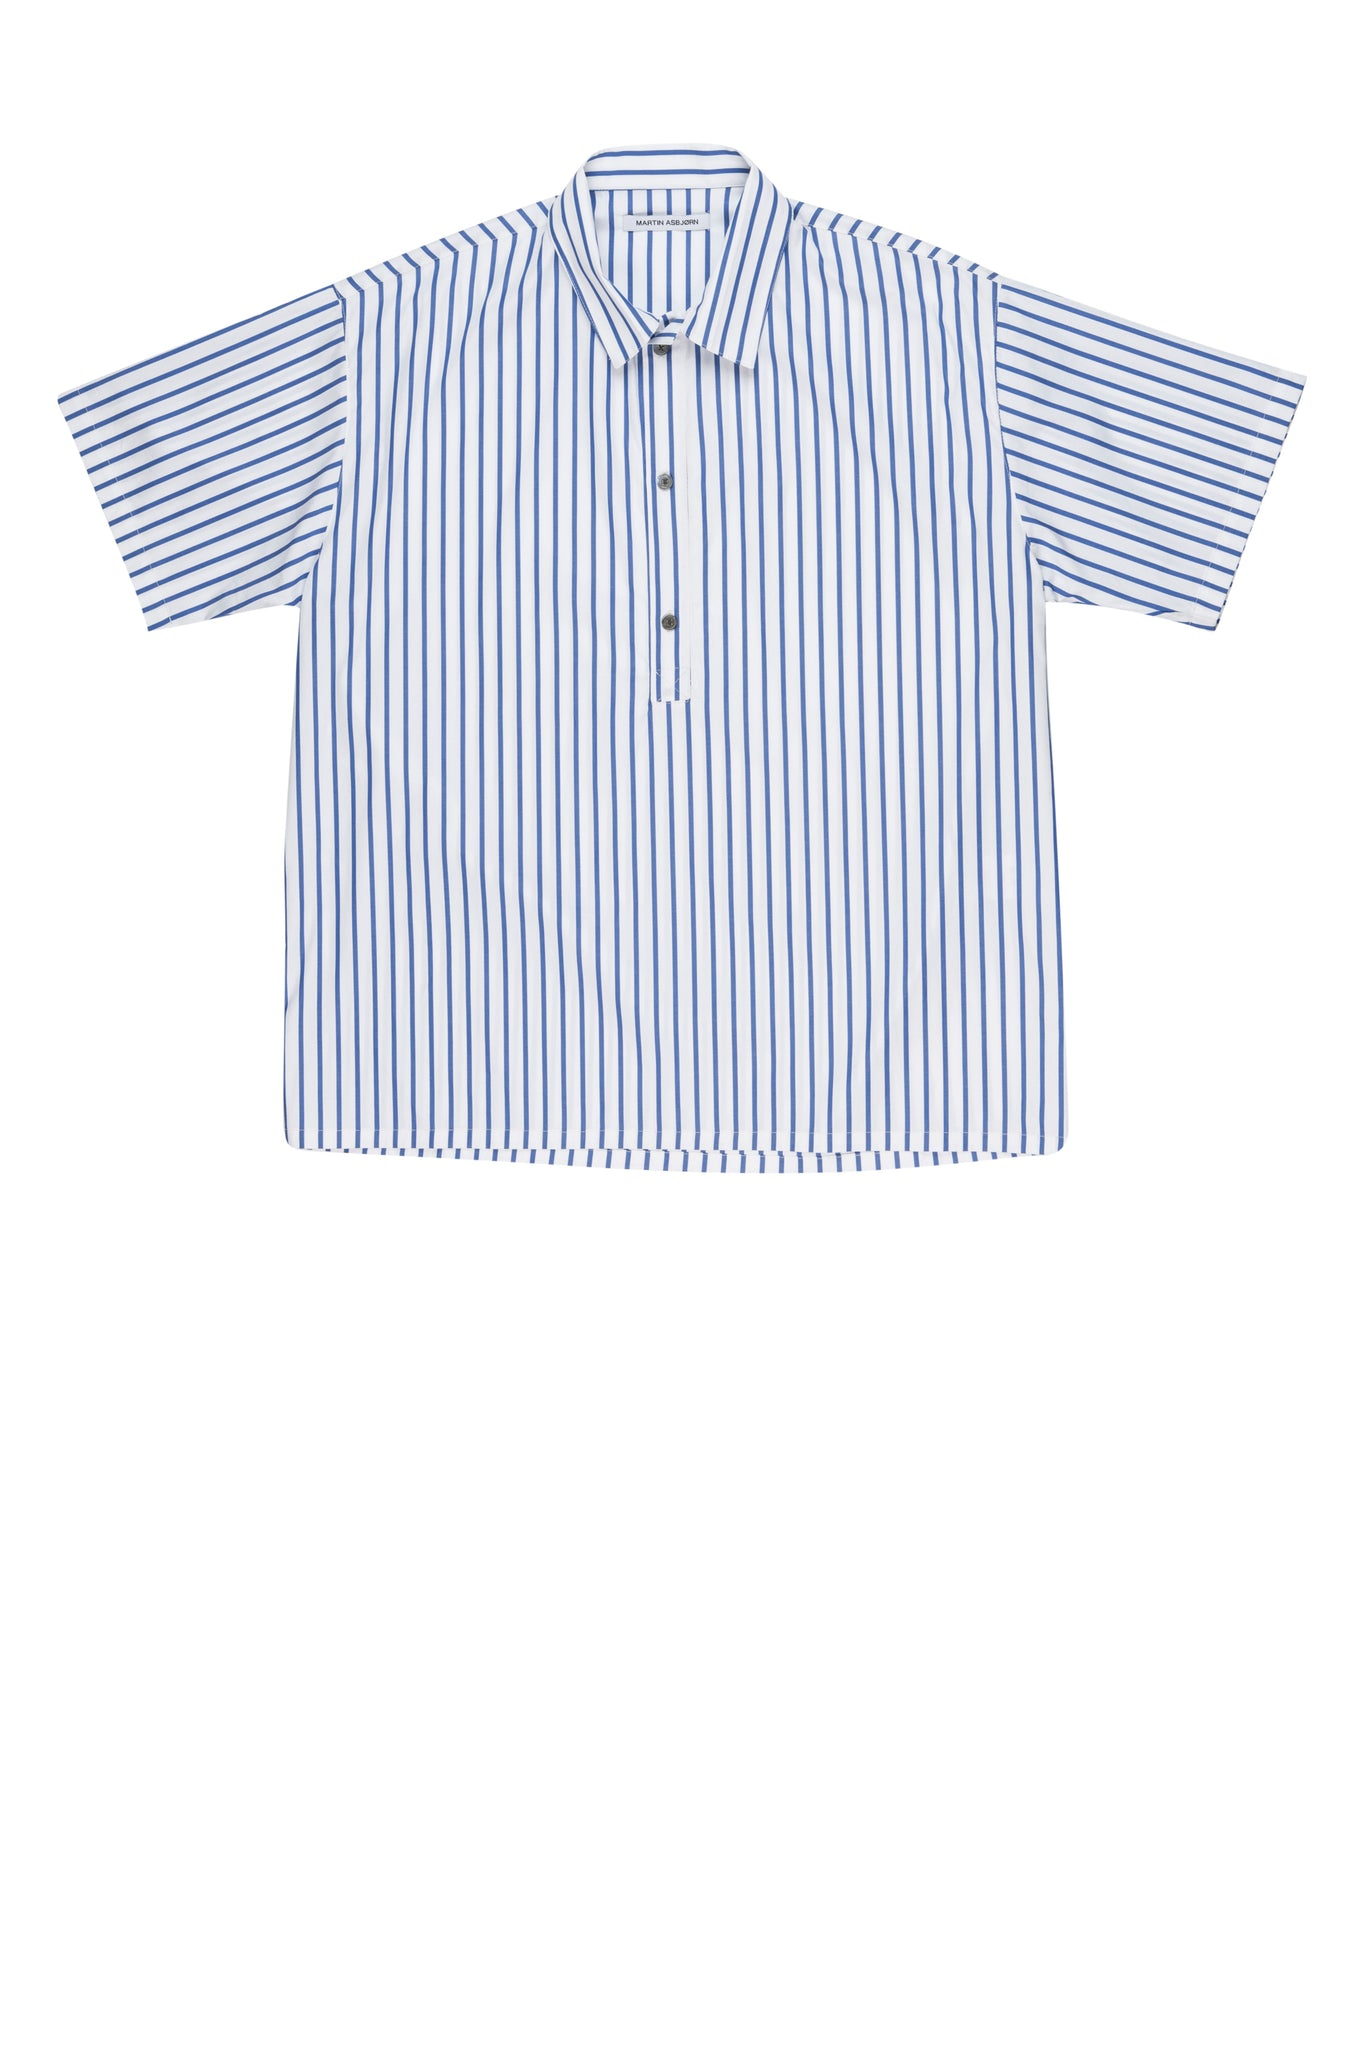 martin asbjørn ma cotton shirt menswear ss20 spring20 big blue stripes